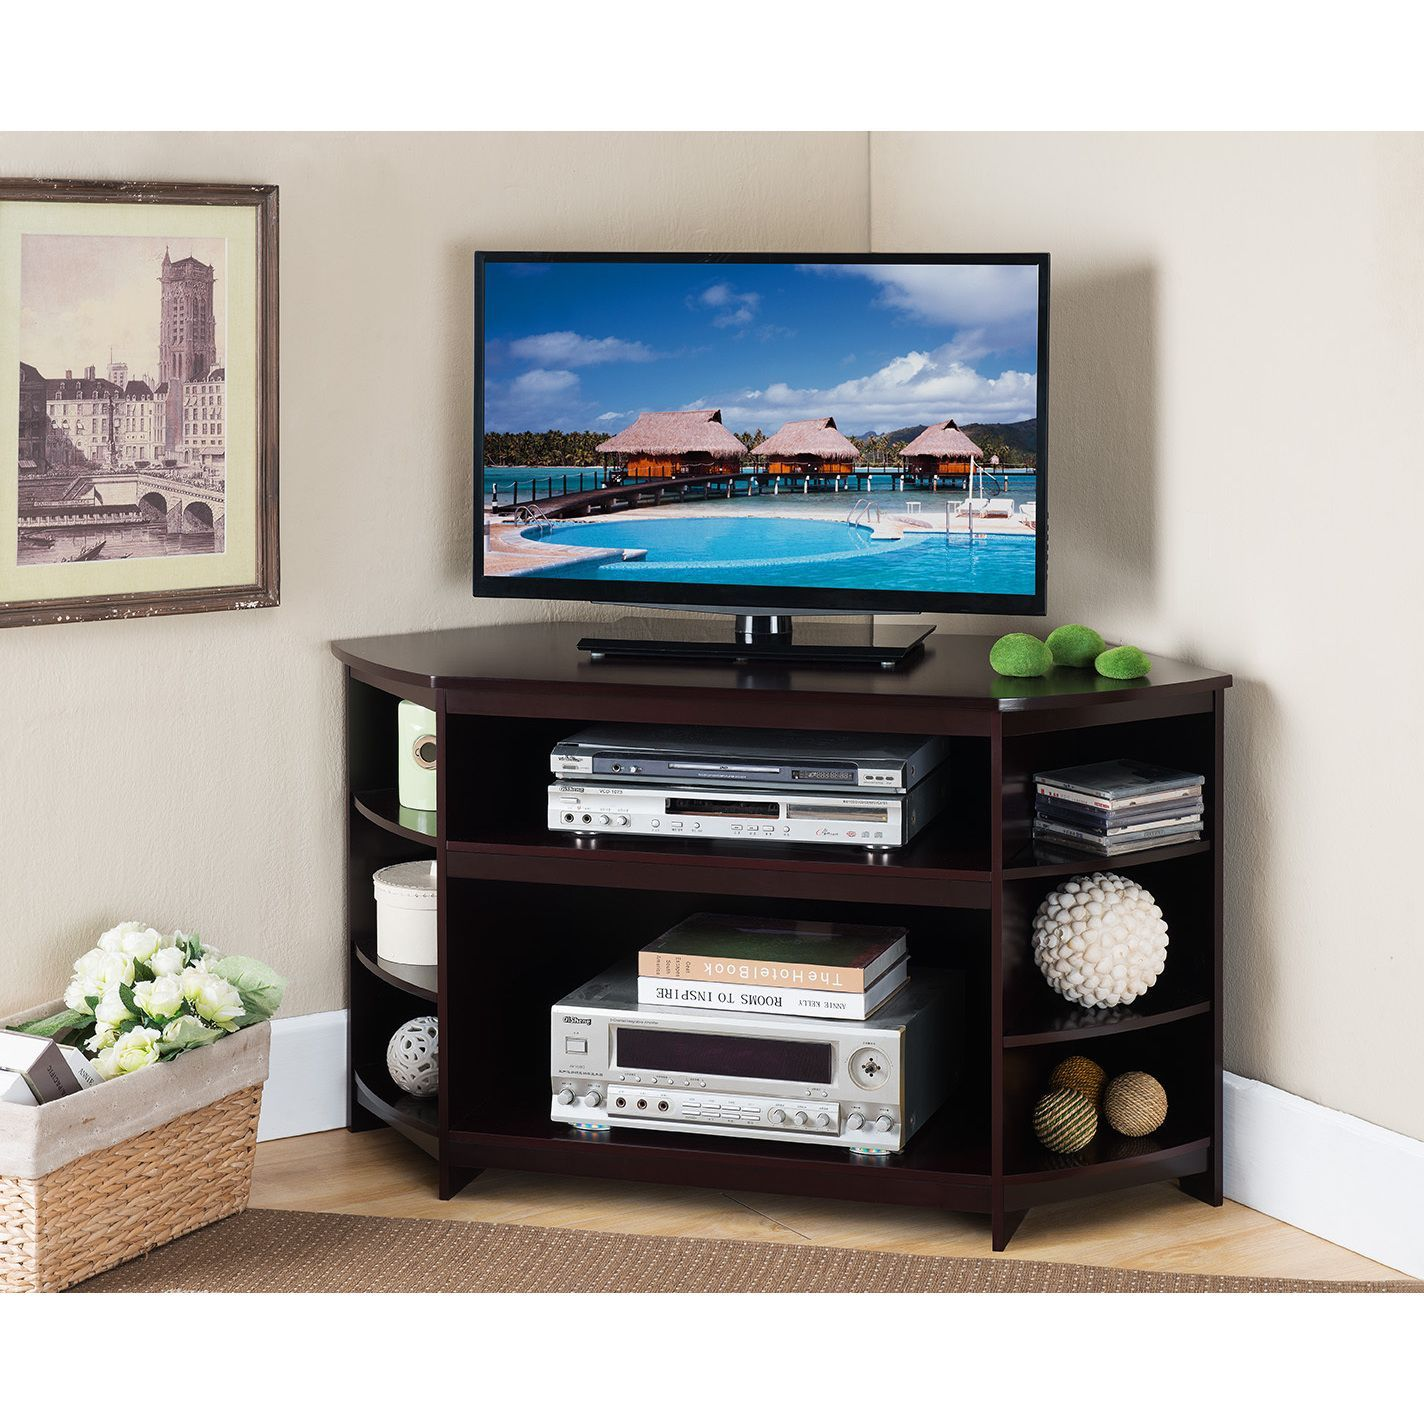 K and b furniture brown wood and veneer tv stand e tv stands